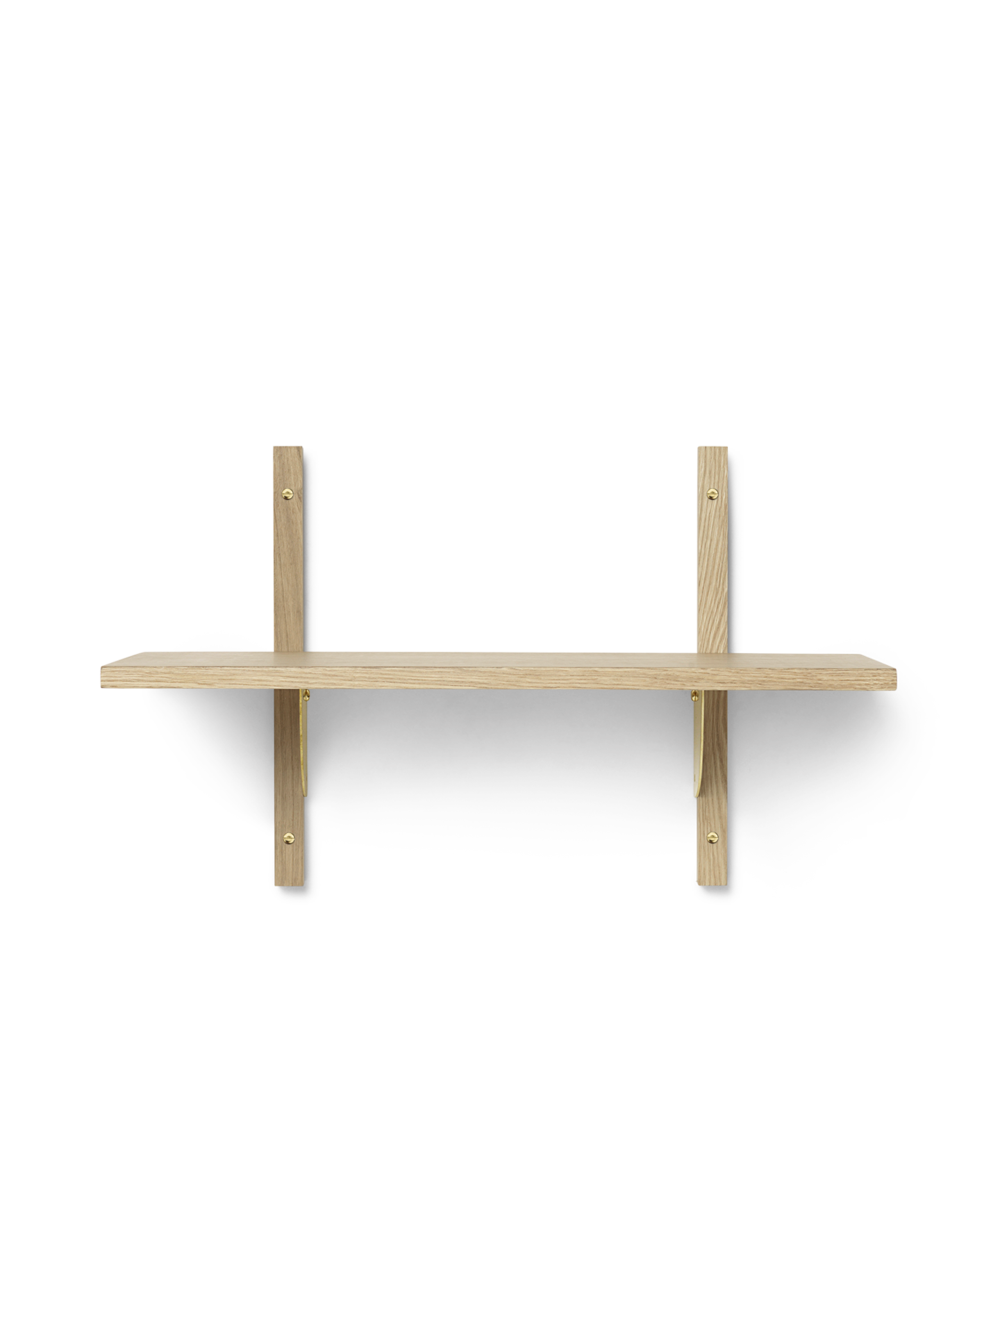 Sector Shelf - Single - Narrow - Natural - Brass